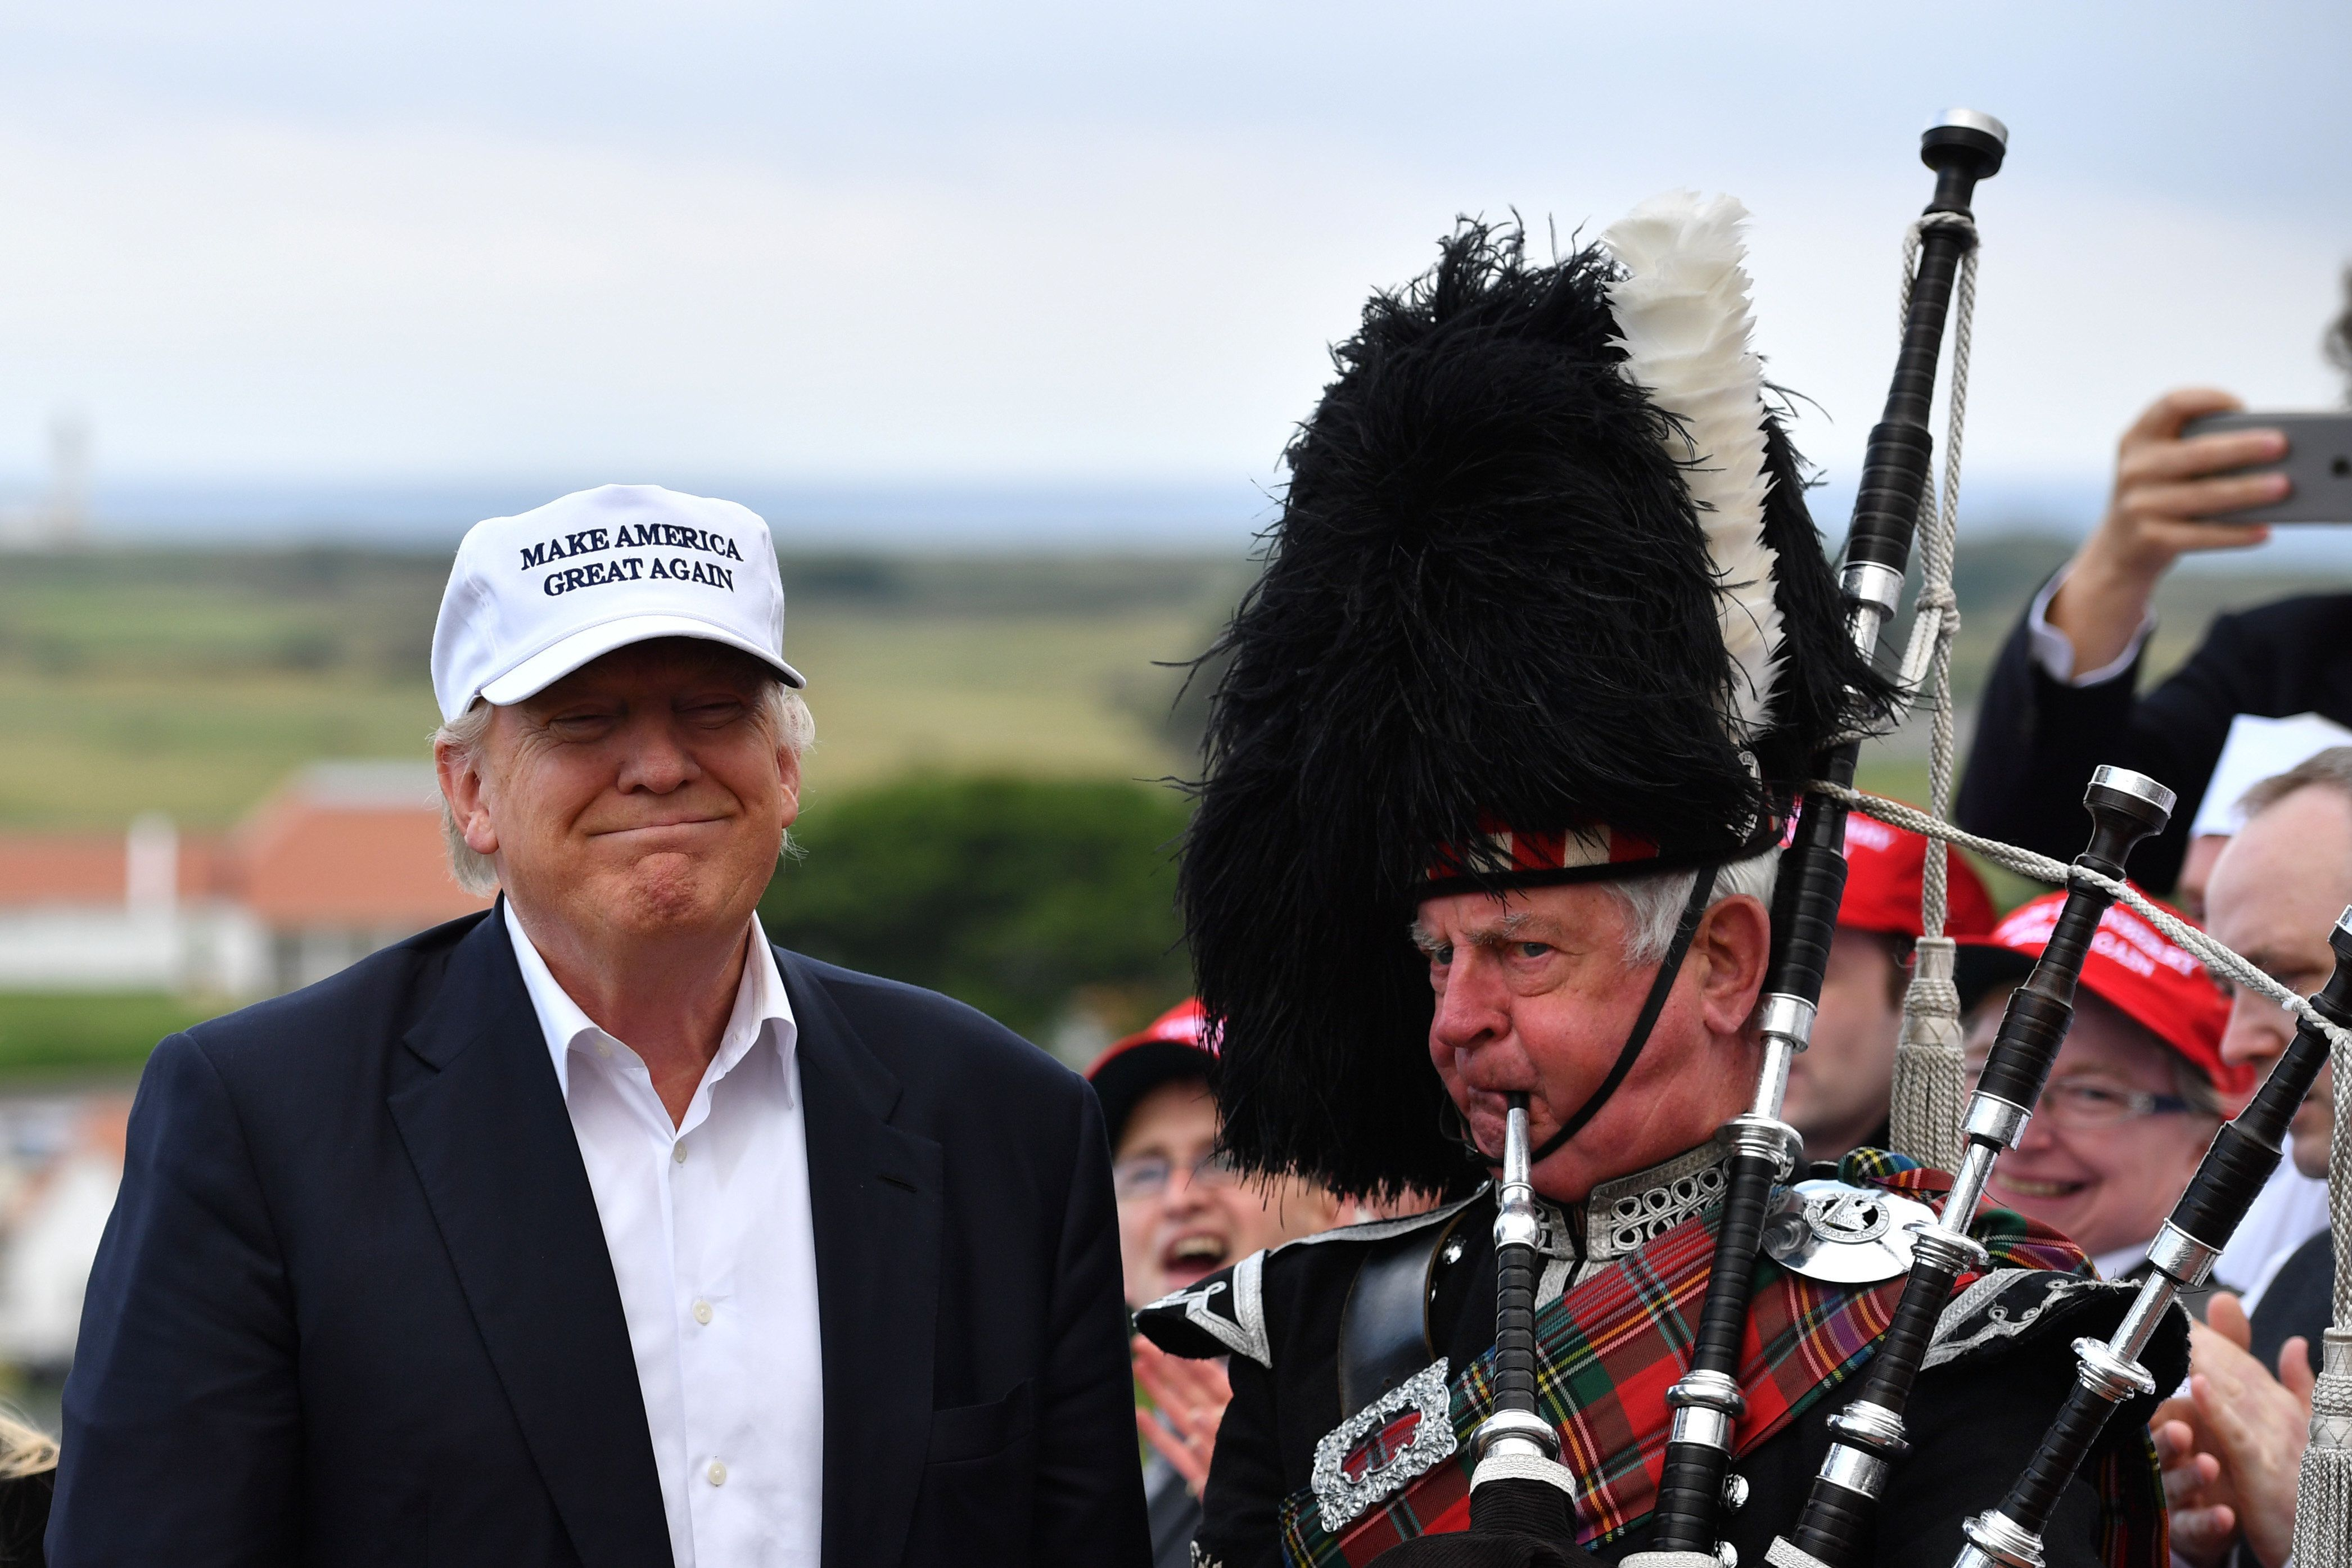 Trump's biggest fear about Scottish independence appears to be about golf